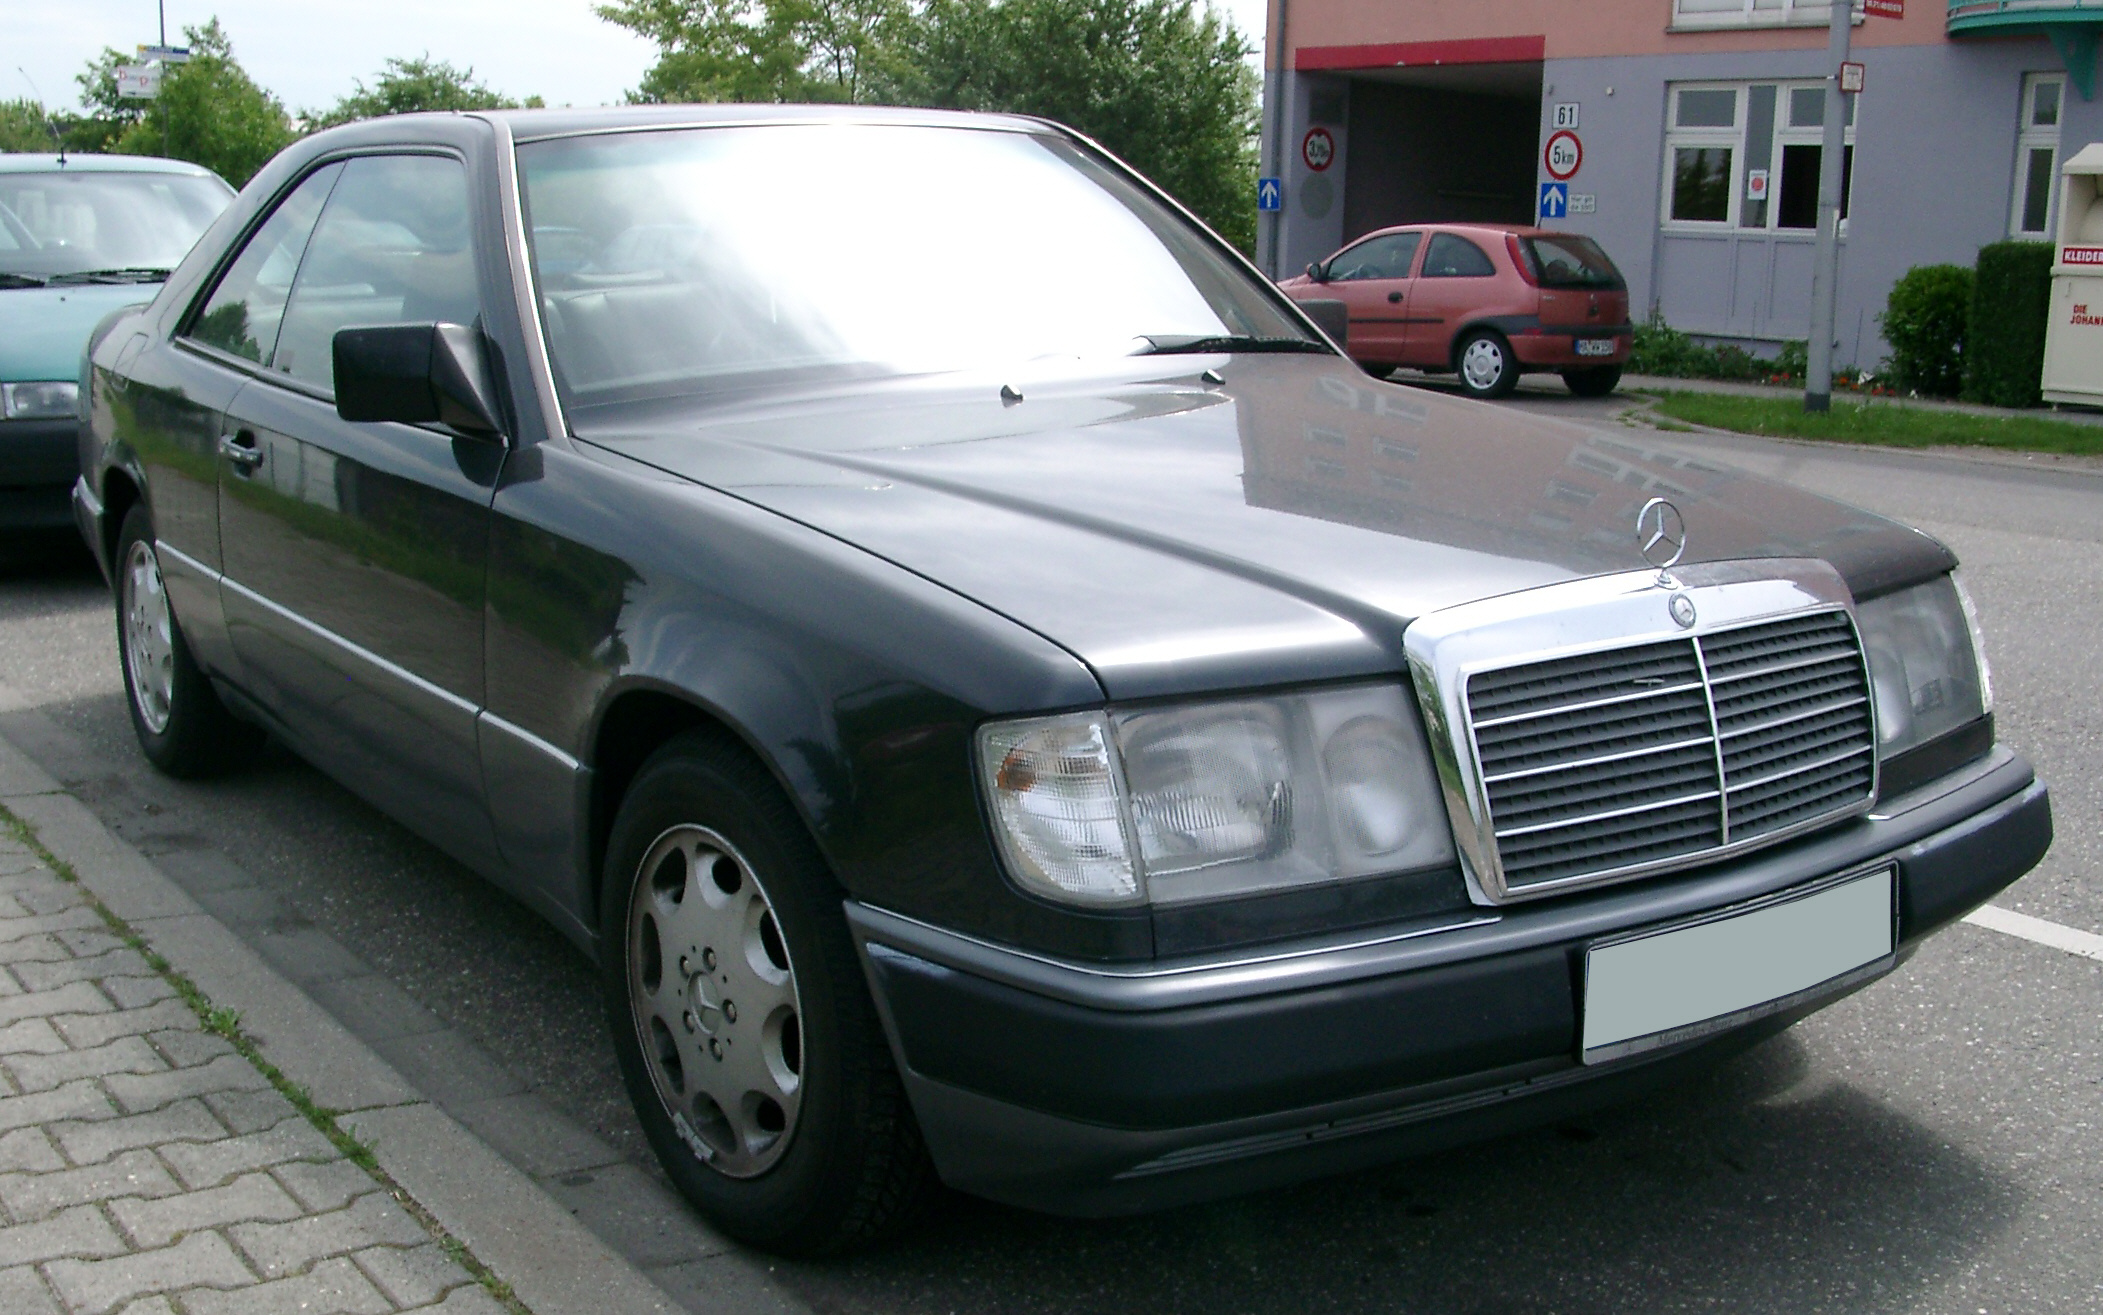 file mercedes w124 coupe front wikimedia commons. Black Bedroom Furniture Sets. Home Design Ideas